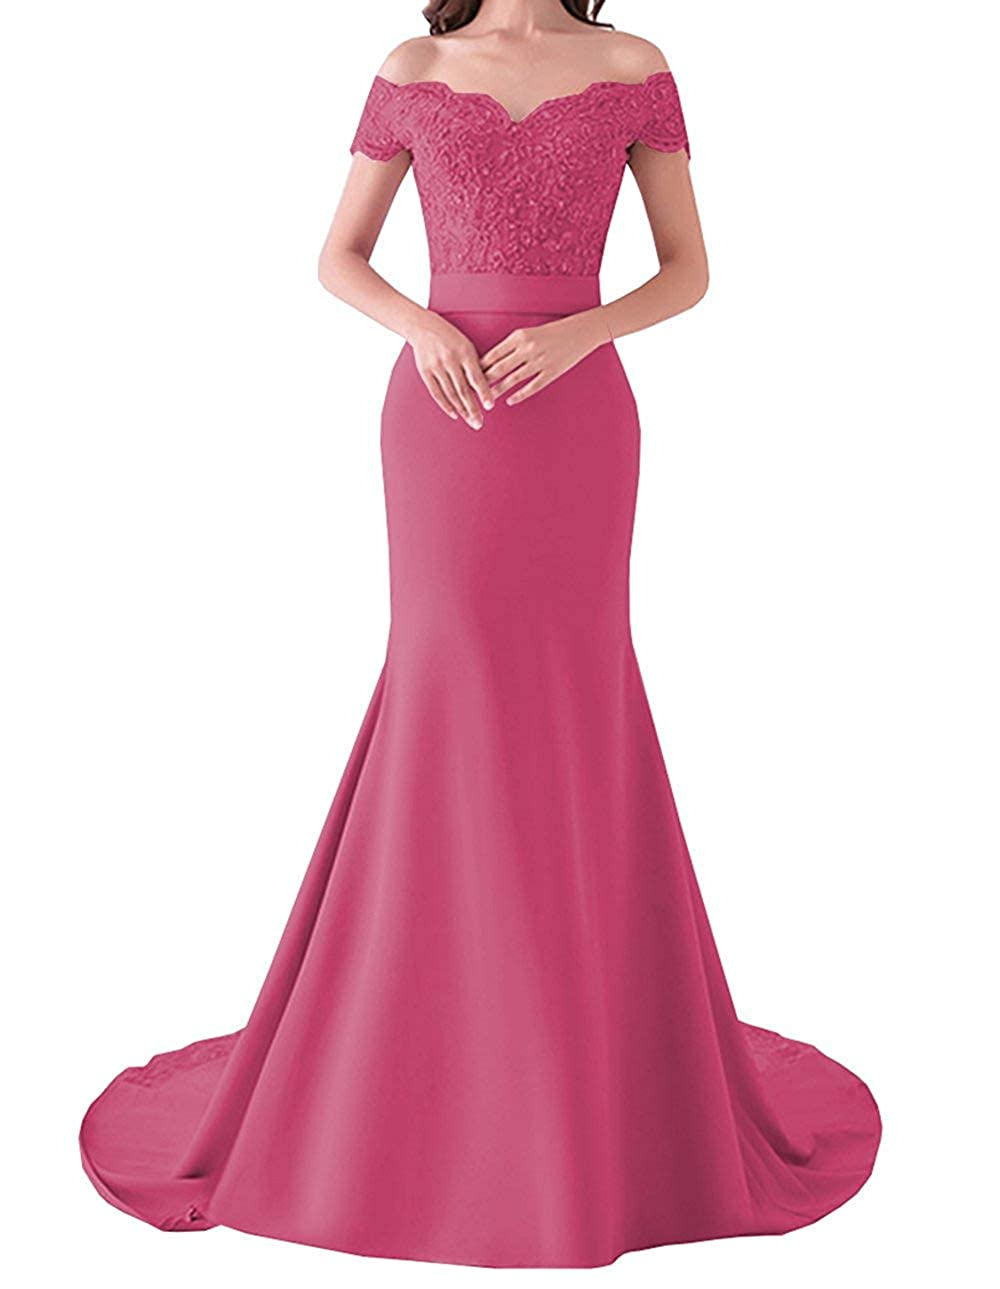 Fuchsia 20KyleBird Women's Sexy Off The Shoulder Lace Mermaid Bridesmaid Dresses Sweetheart Satin Prom Evening Gowns Plus Size